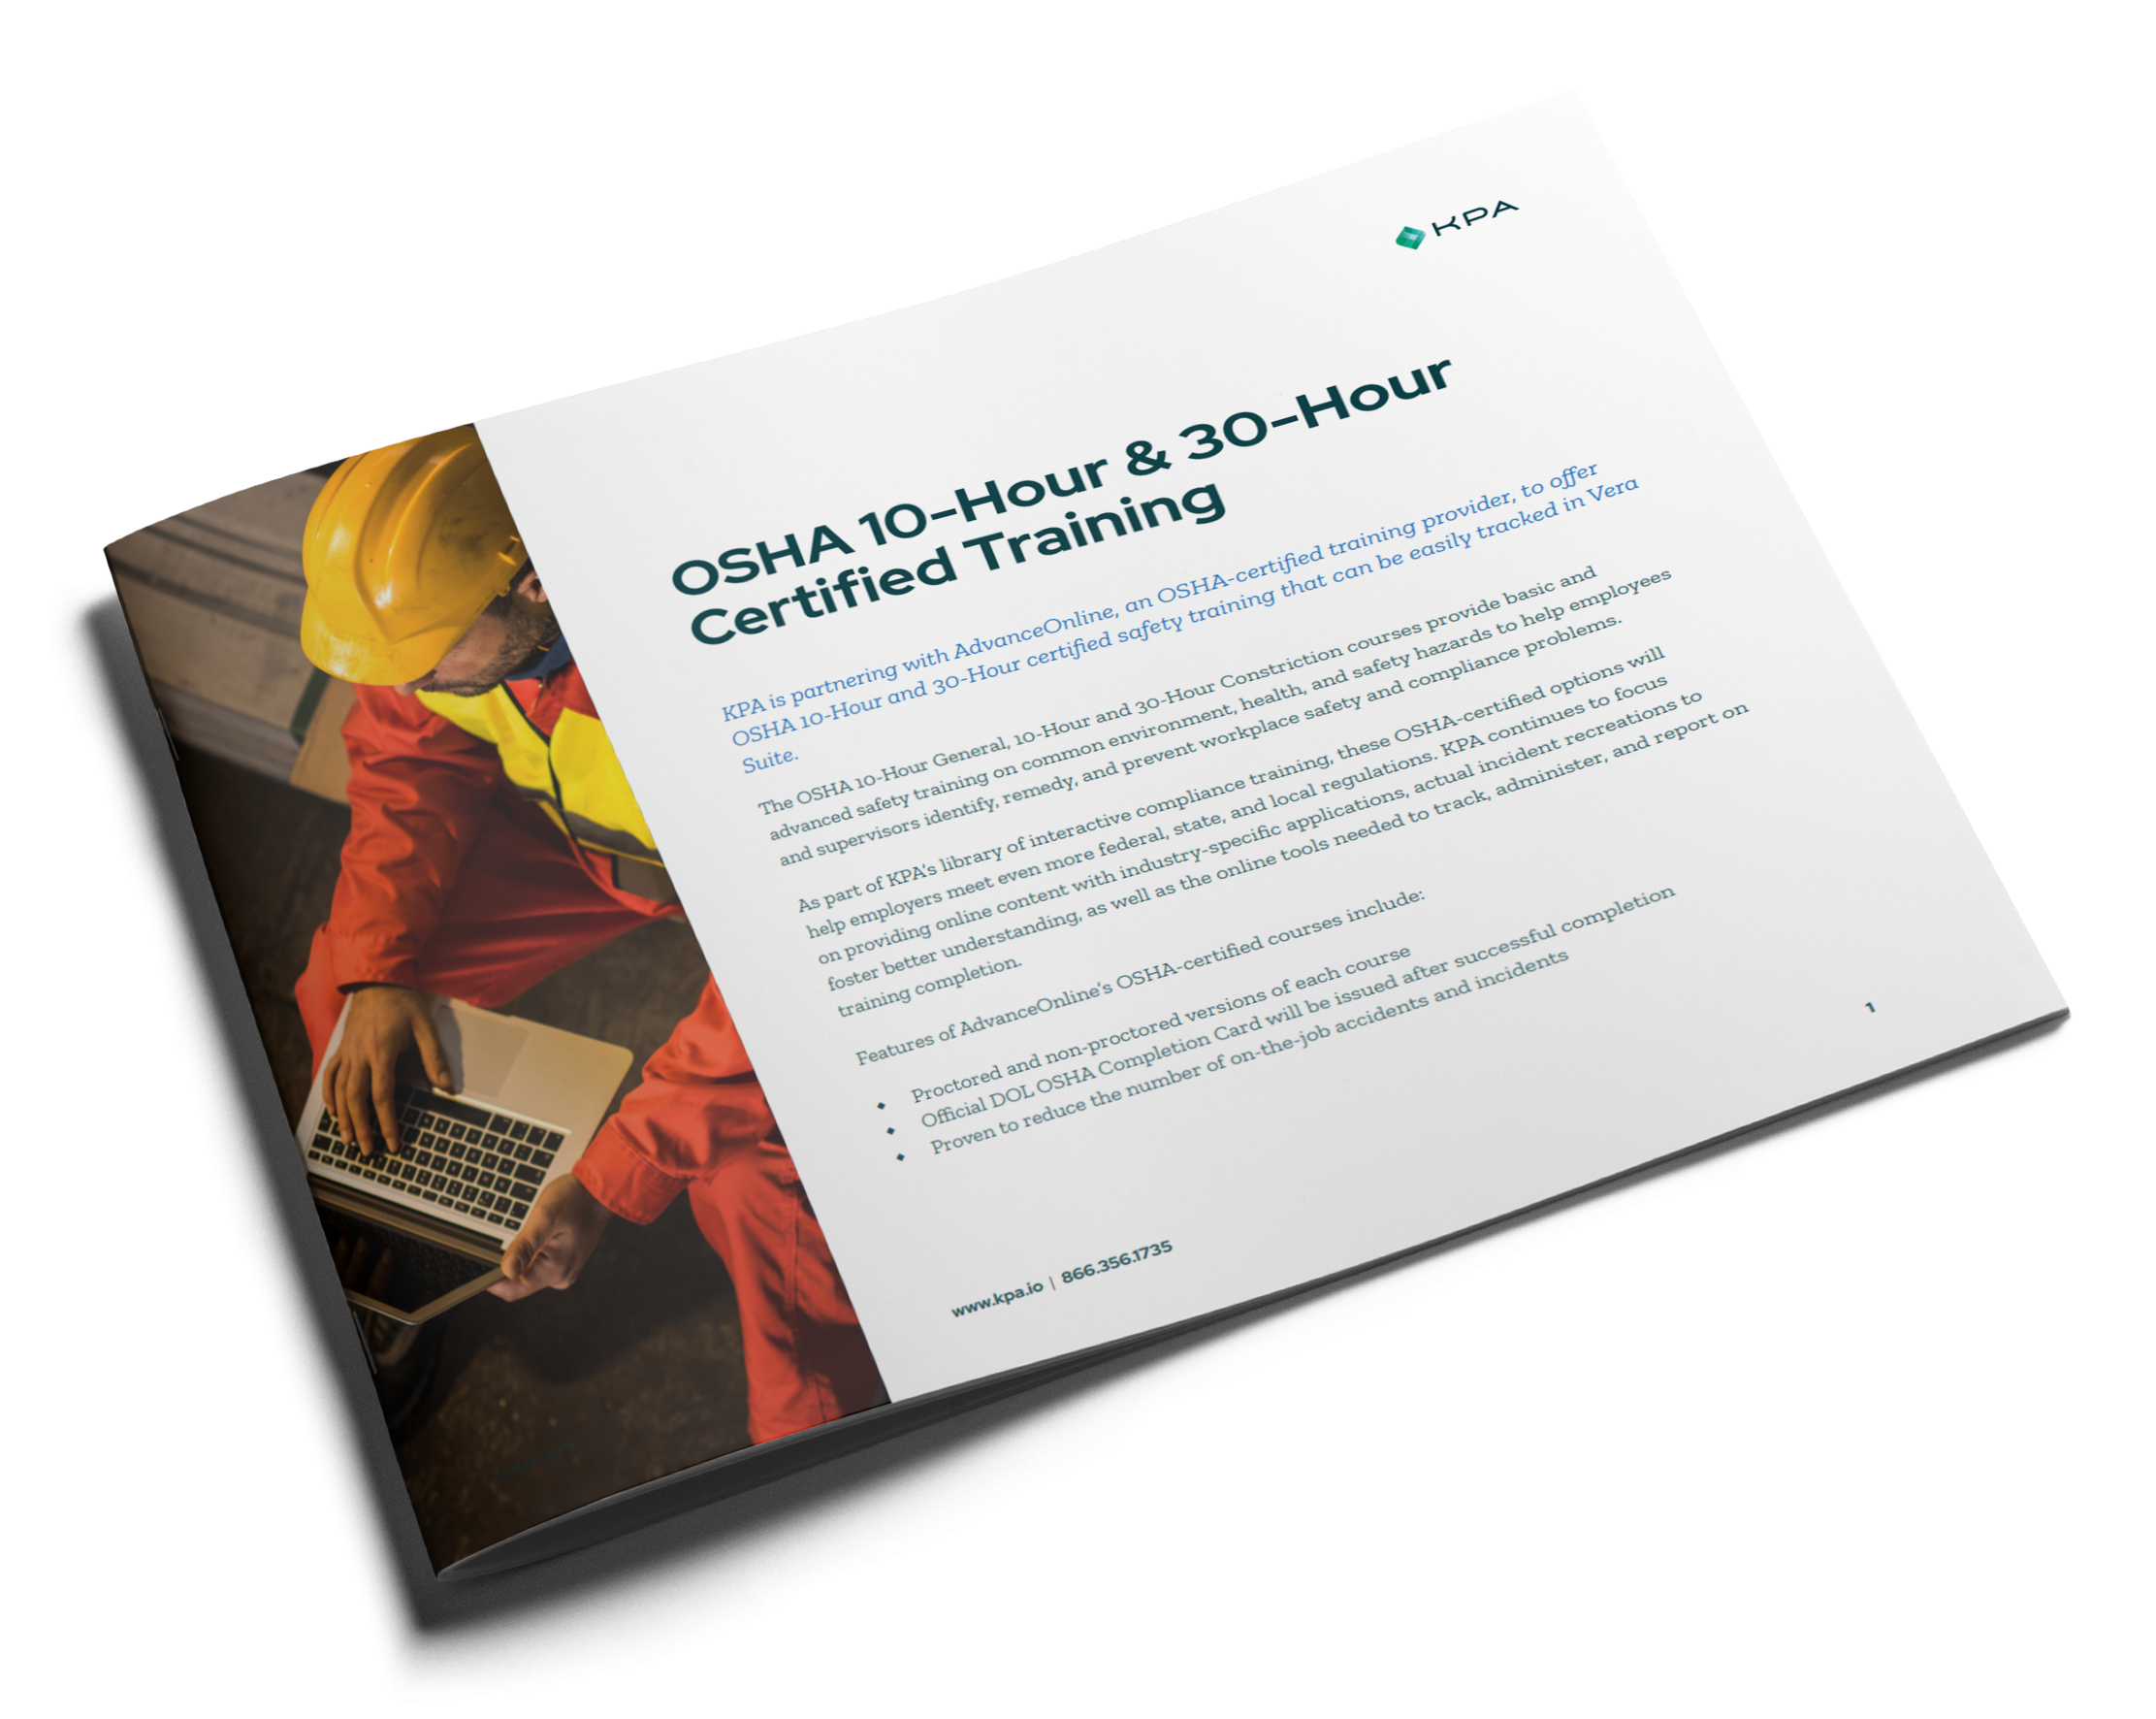 OSHA 10-Hour & 30-Hour Certified Training Datasheet Cover Thumbnail